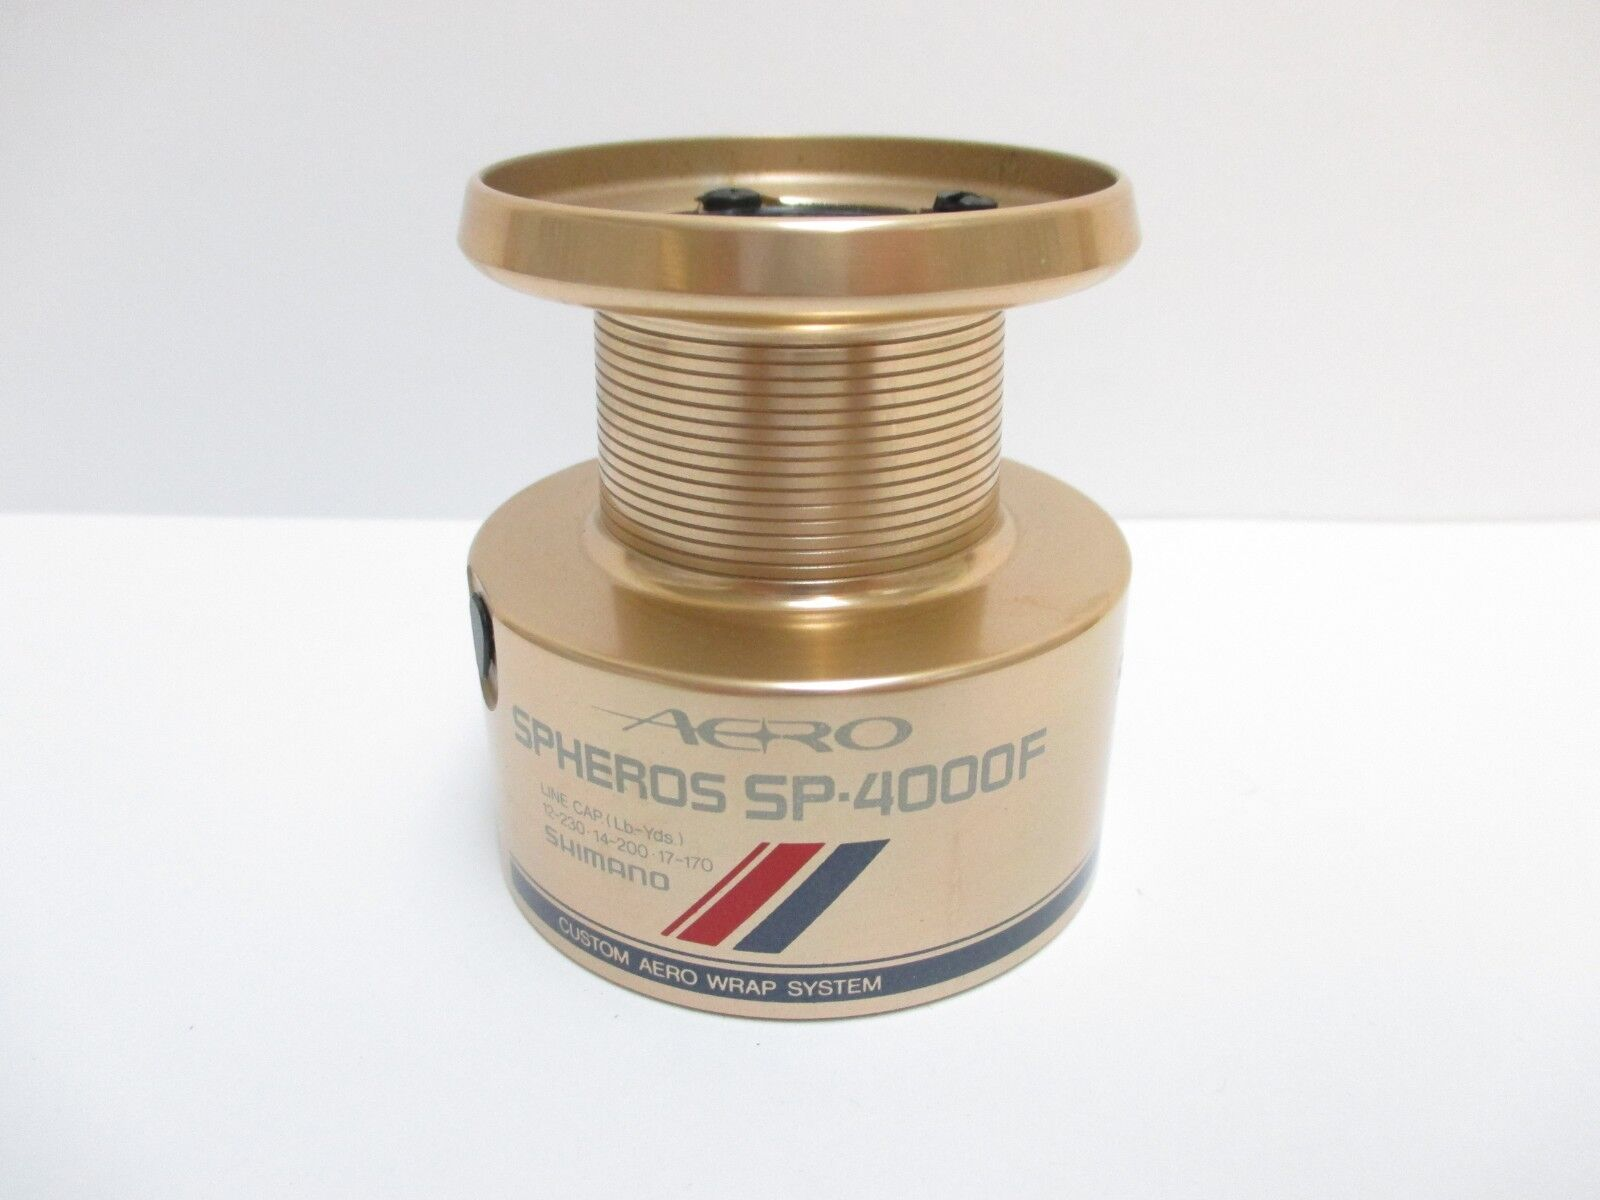 SHIMANO SPINNING REEL PART - RD3180 Spheros 4000F - Spool Assembly  A